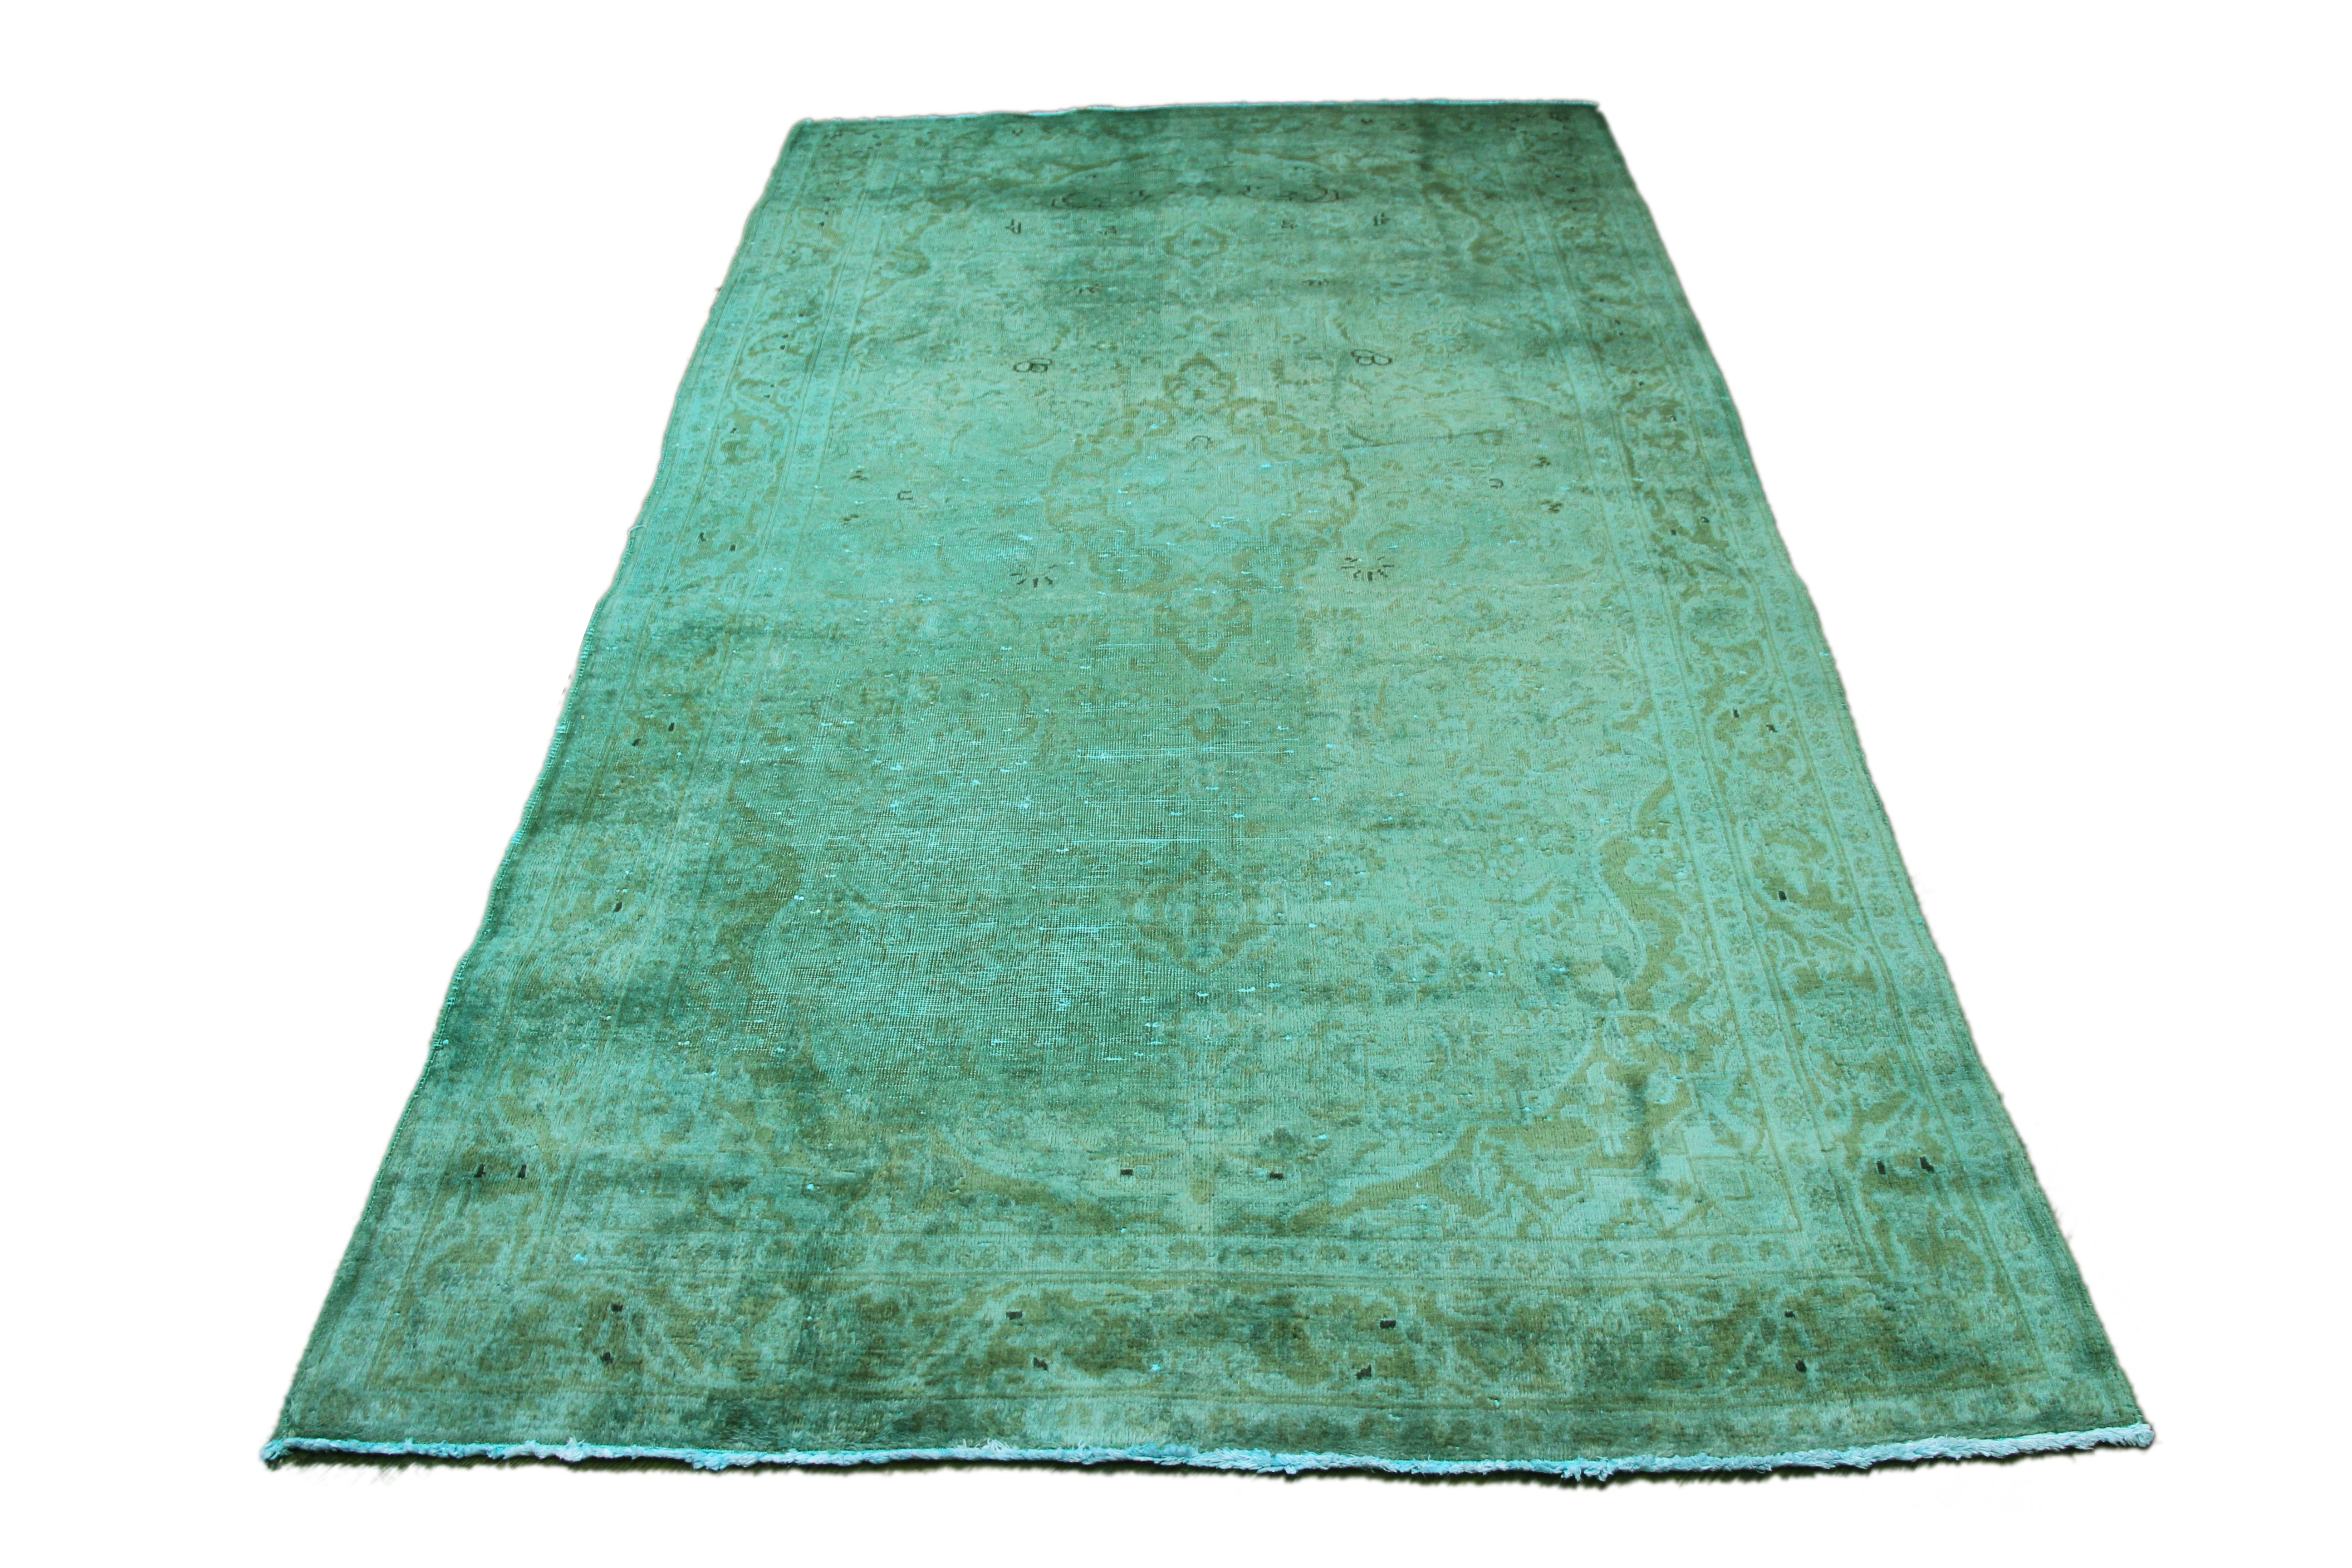 5x9 Overdyed Rug Sapphire Green Distressed Vintage Oriental Kashan 2699 - west of hudson